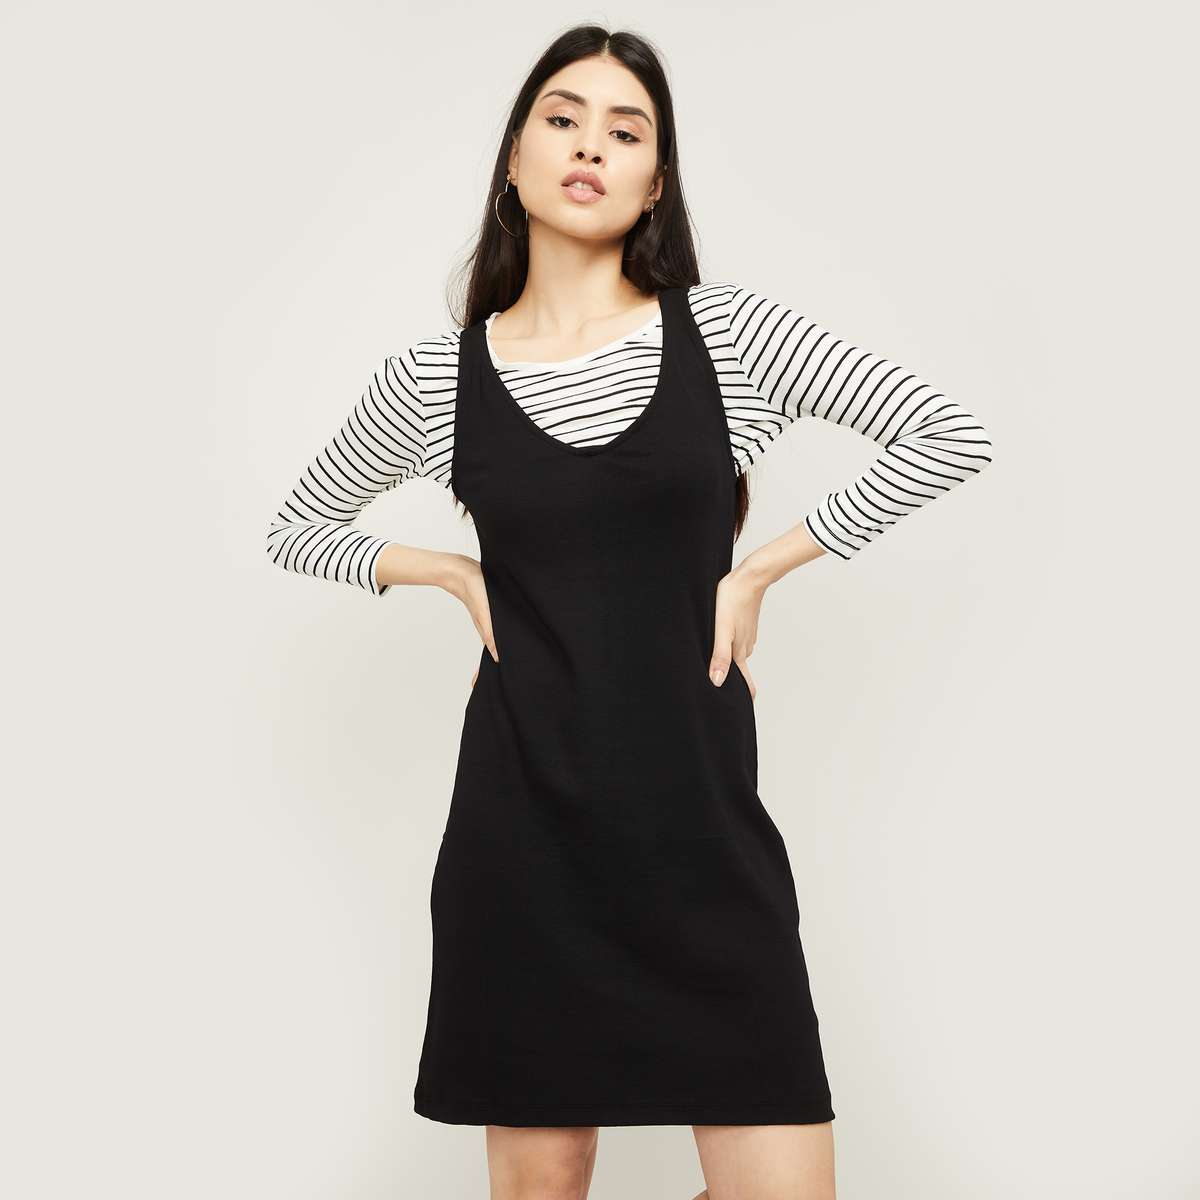 1.BOSSINI Women A-line Dress with Striped Top